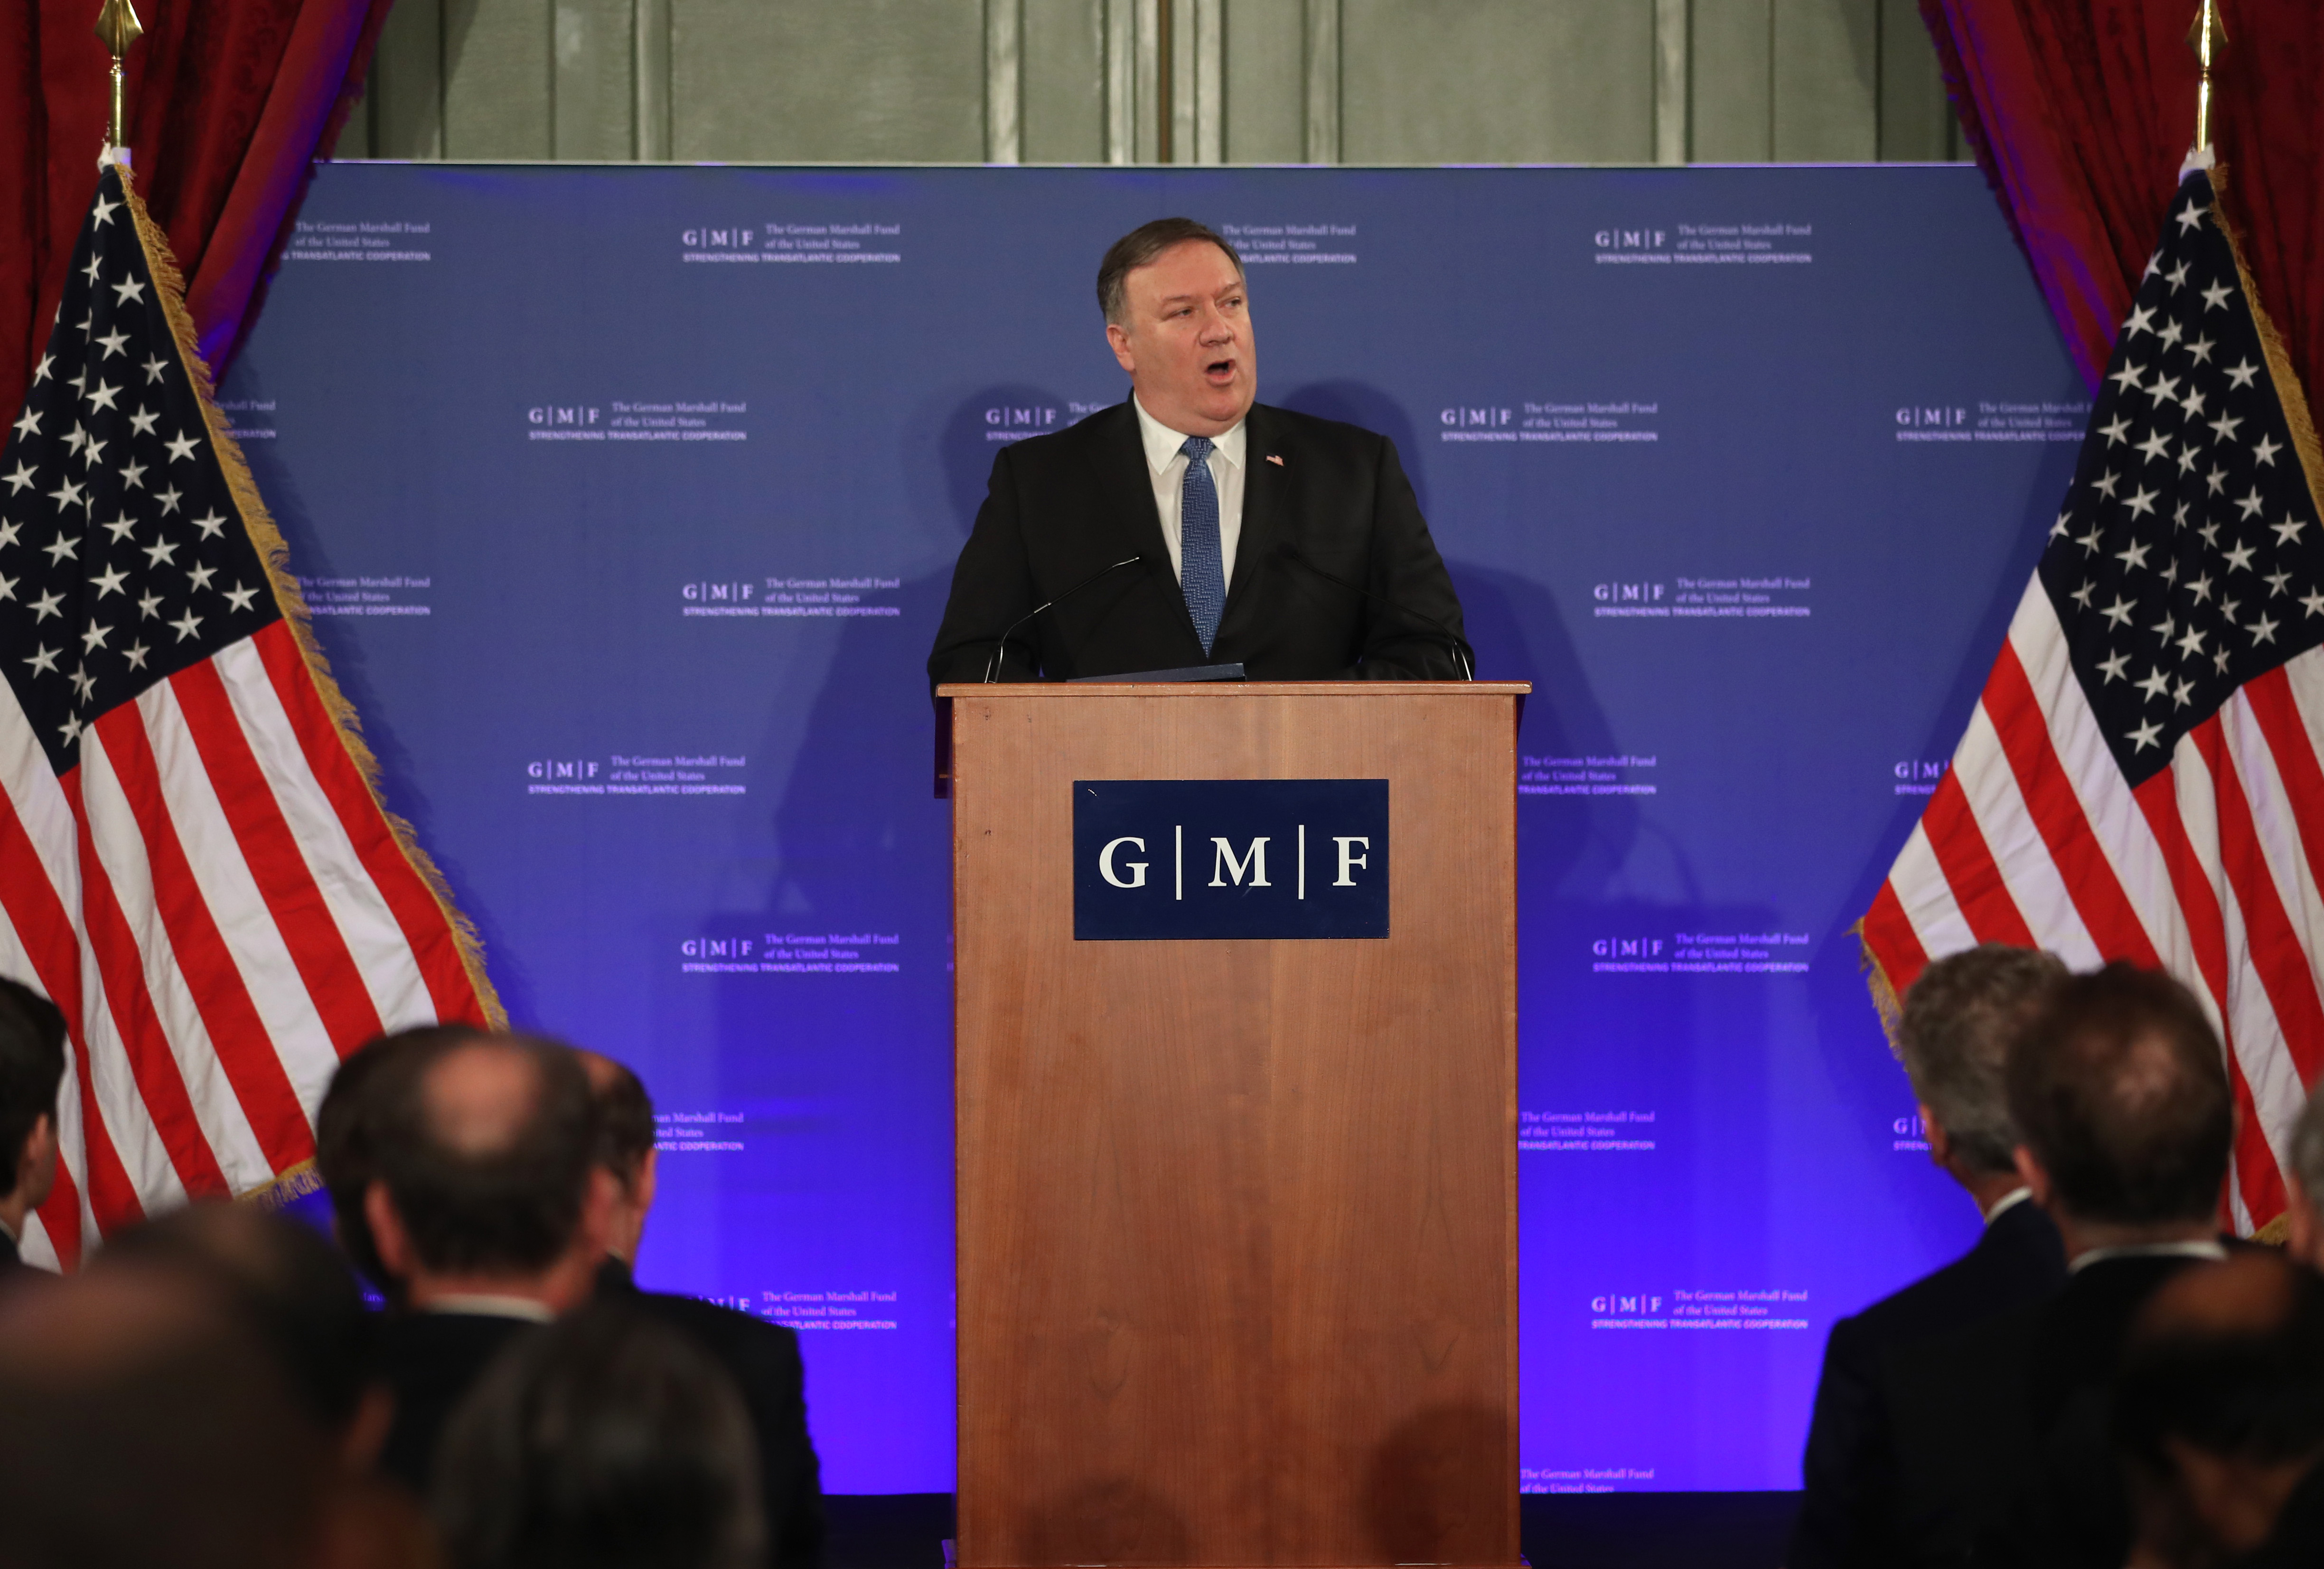 Secretary of State Mike Pompeo speaks during an event at the Concert Noble in Brussels, Belgium, on Dec. 4, 2018.